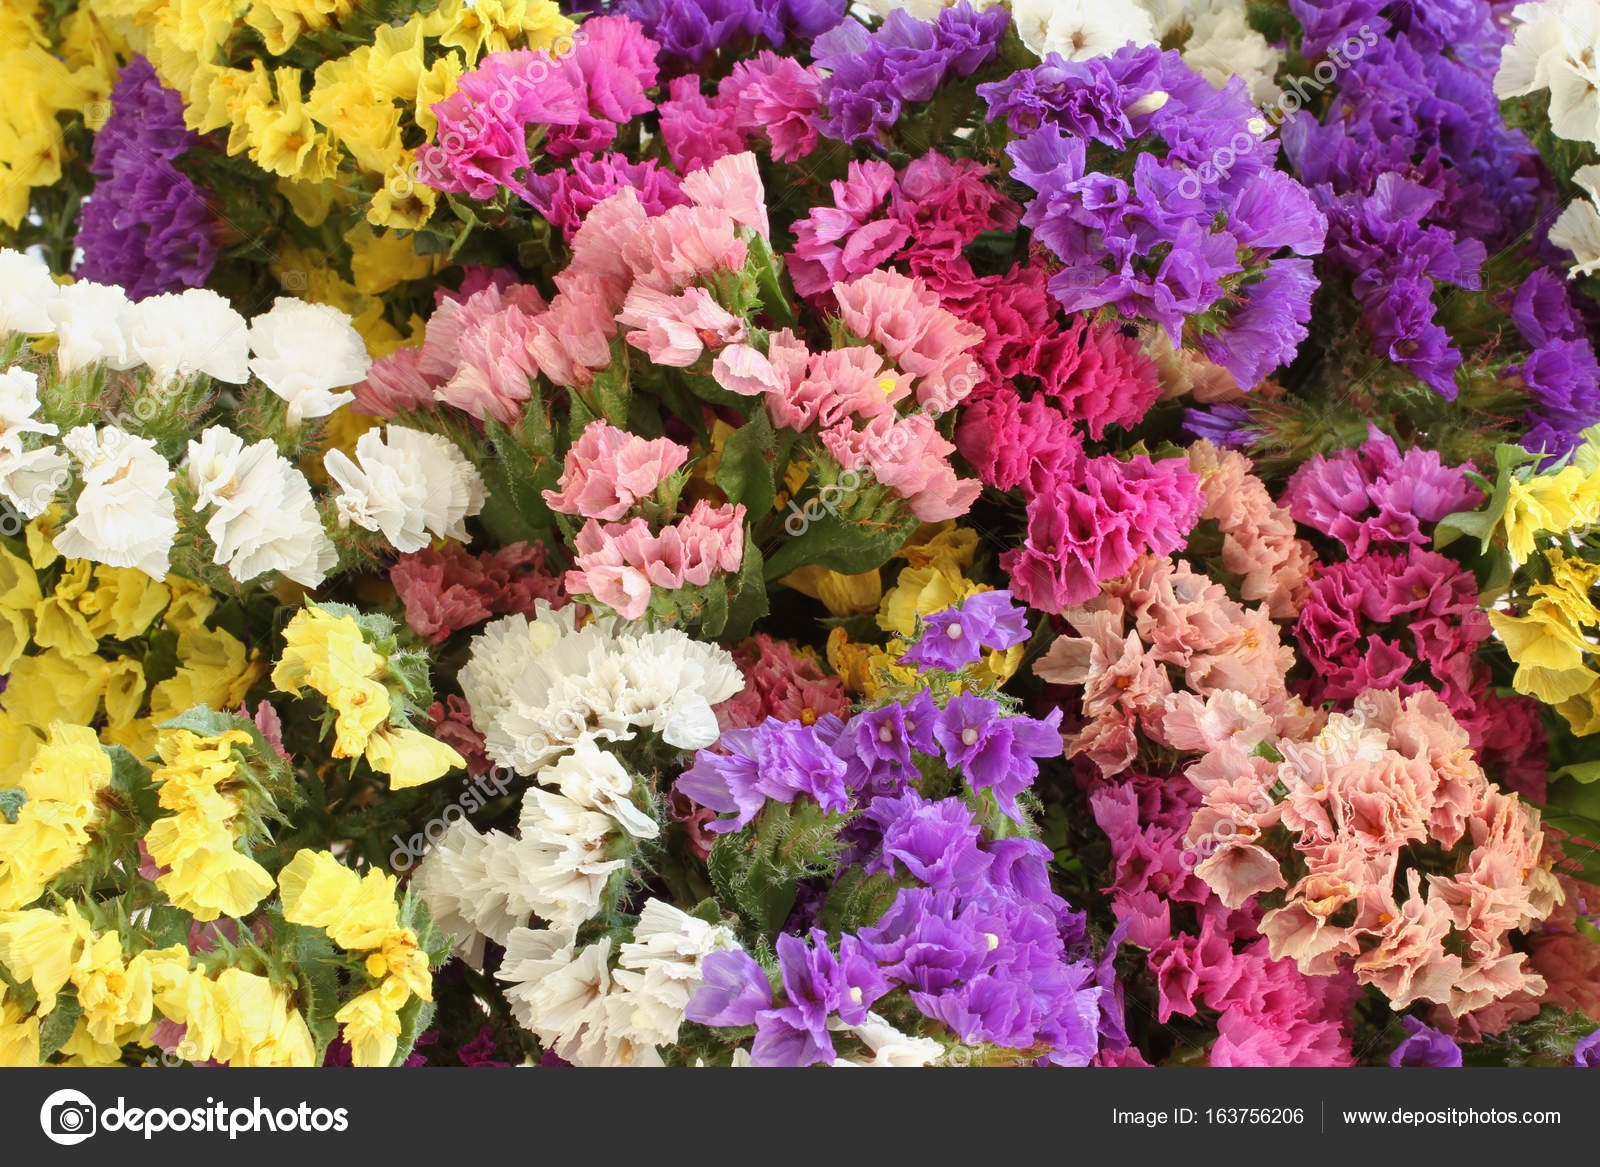 Pink  purple  yellow  white Statice flowers   Limonium Background     Pink  purple  yellow  white Statice flowers   Limonium Background     Photo  by M photographer